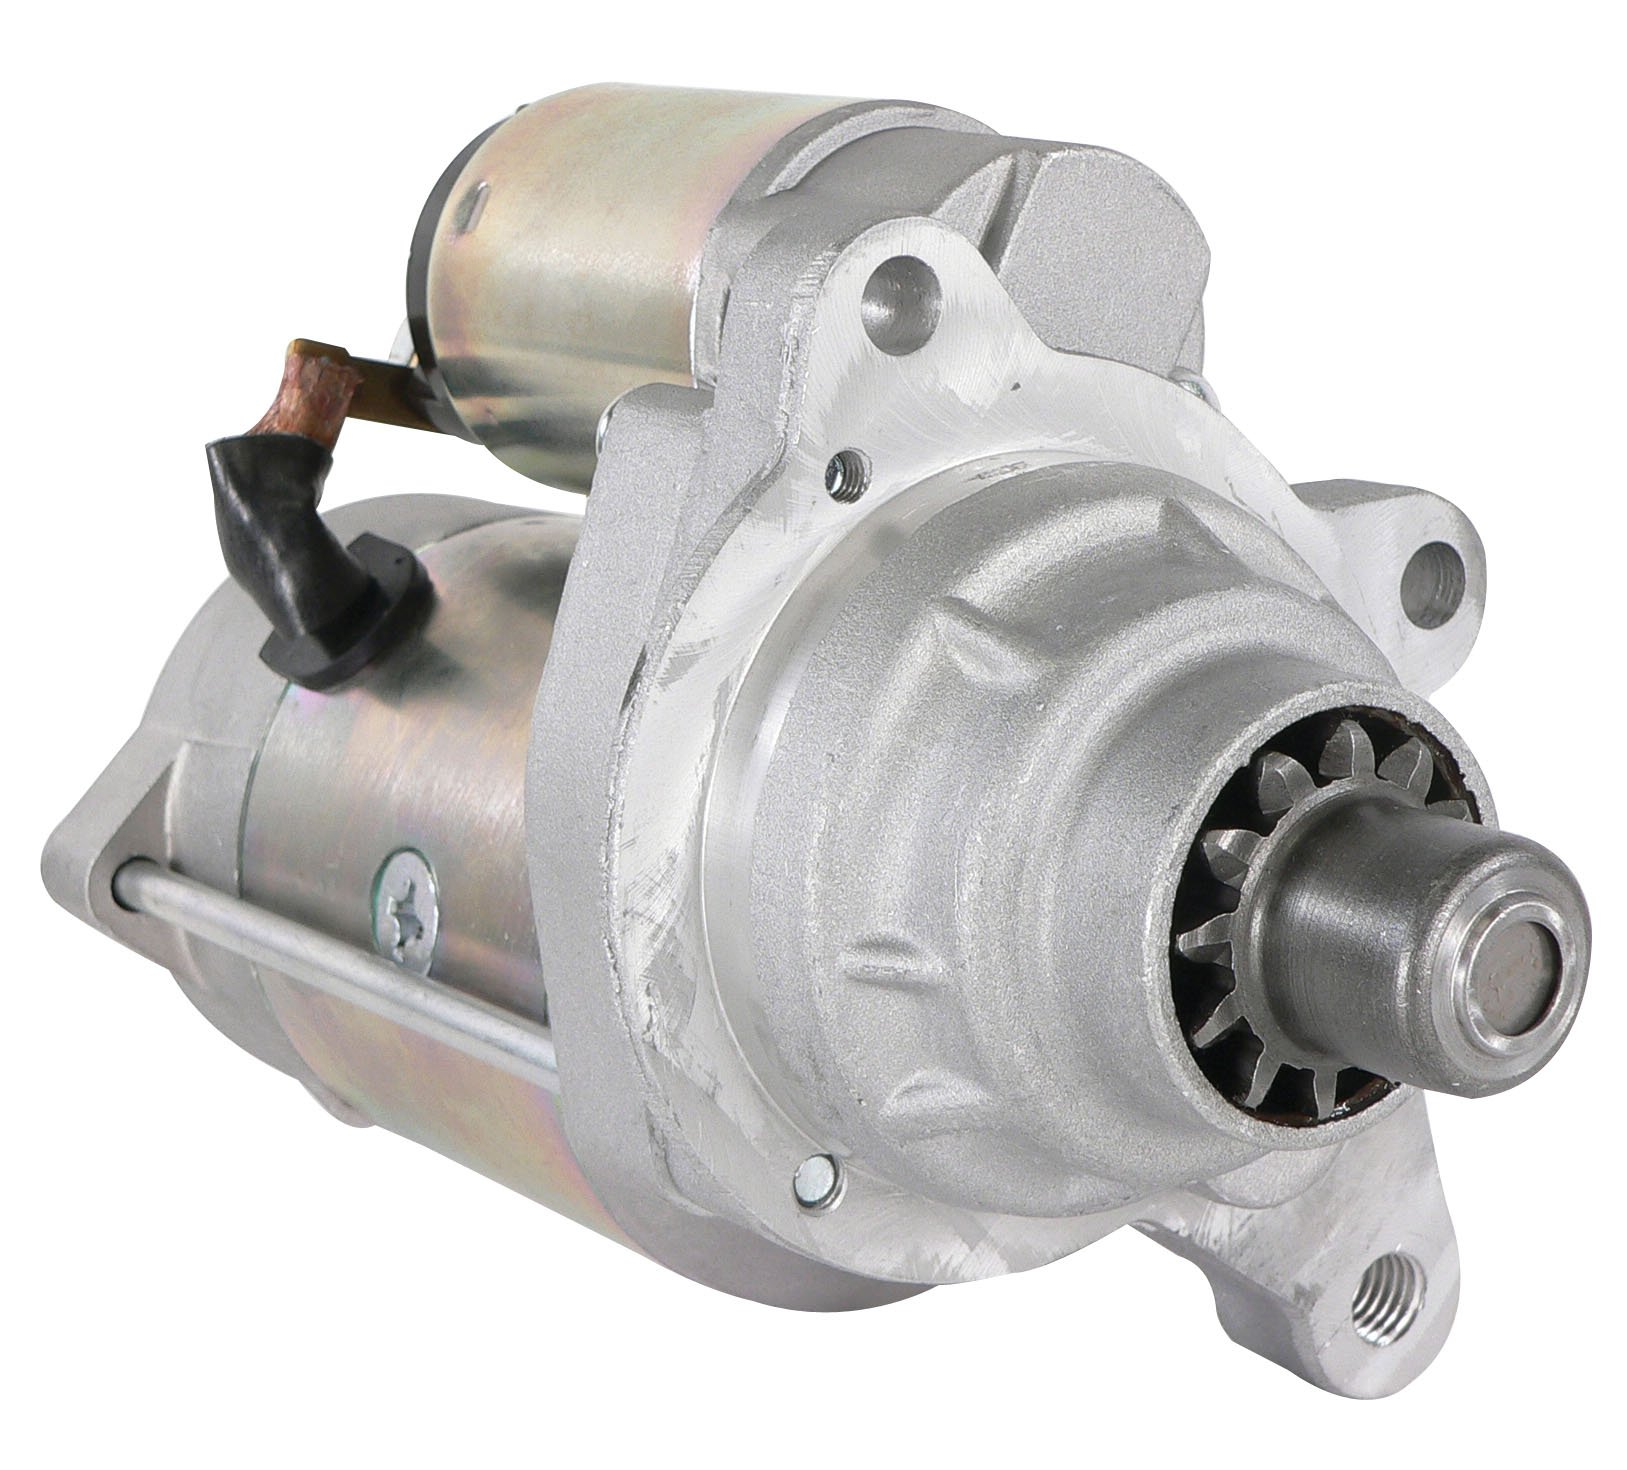 DB Electrical SFD0094 New Starter For Ford Truck Diesel 6.0L 6.0 F Series 03 04 05 06 07, Excursion 03 04 05, 6.0 Diesel F450 F550 Super Duty 03 04 05 06, Van 04 05 06 07 08 09 10 IMI25010-001 SA-904